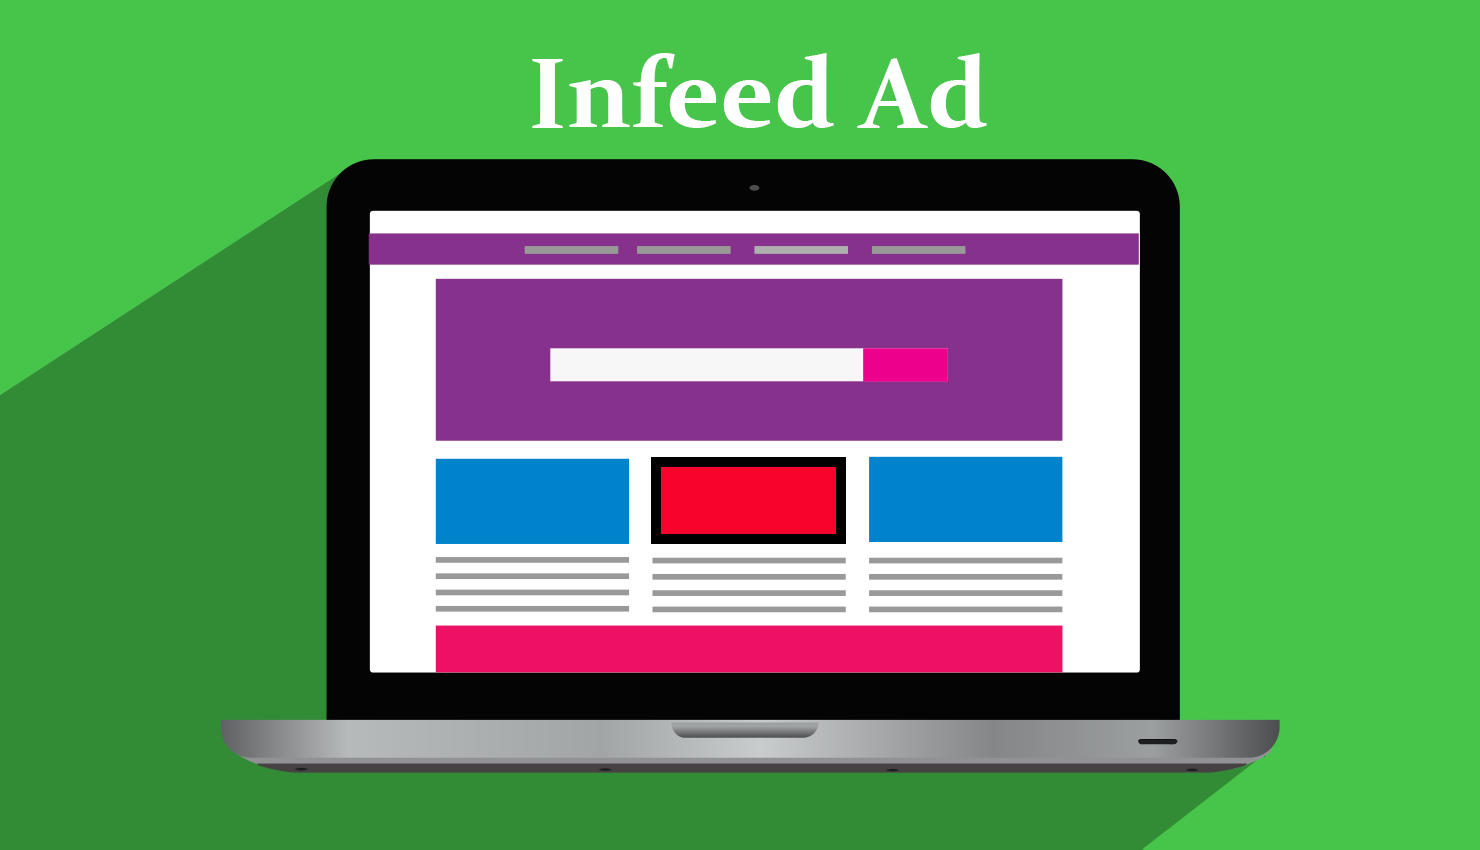 pc-infeed-ad